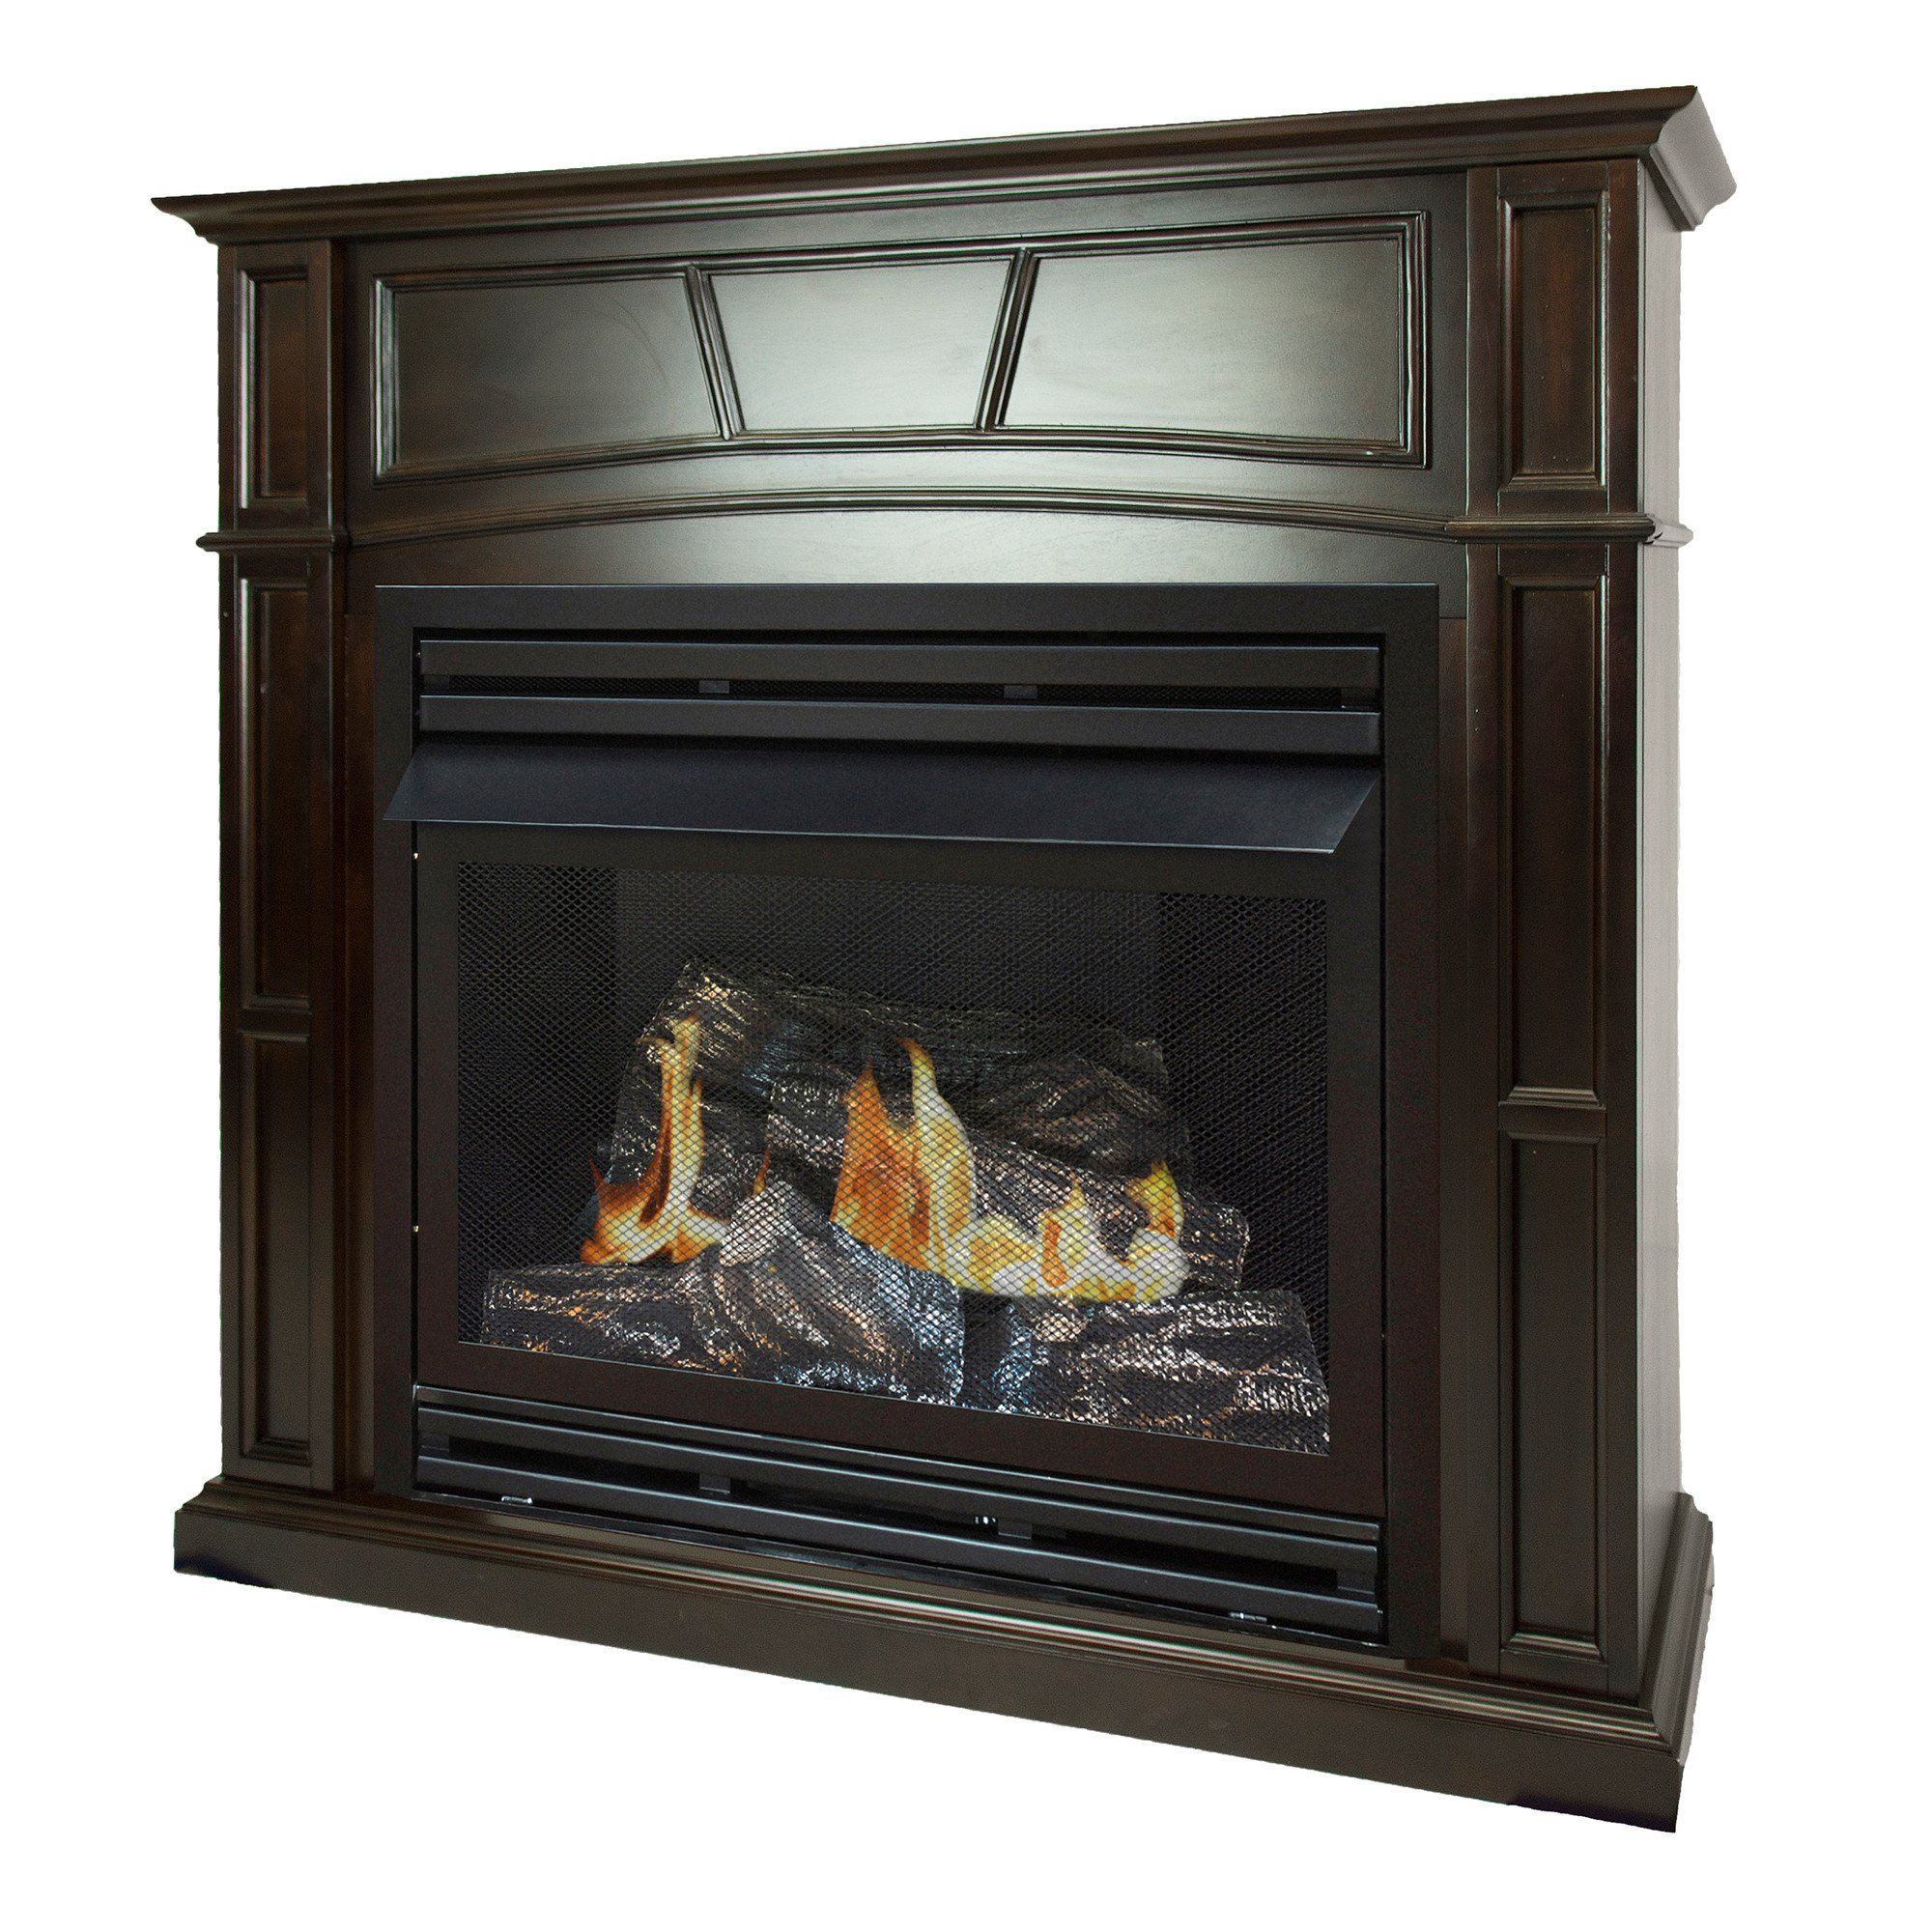 Pleasant Hearth 46 Full Size Tobacco Natural Gas Vent Free Fireplace System 32,000 BTU, Rich by Pleasant Hearth